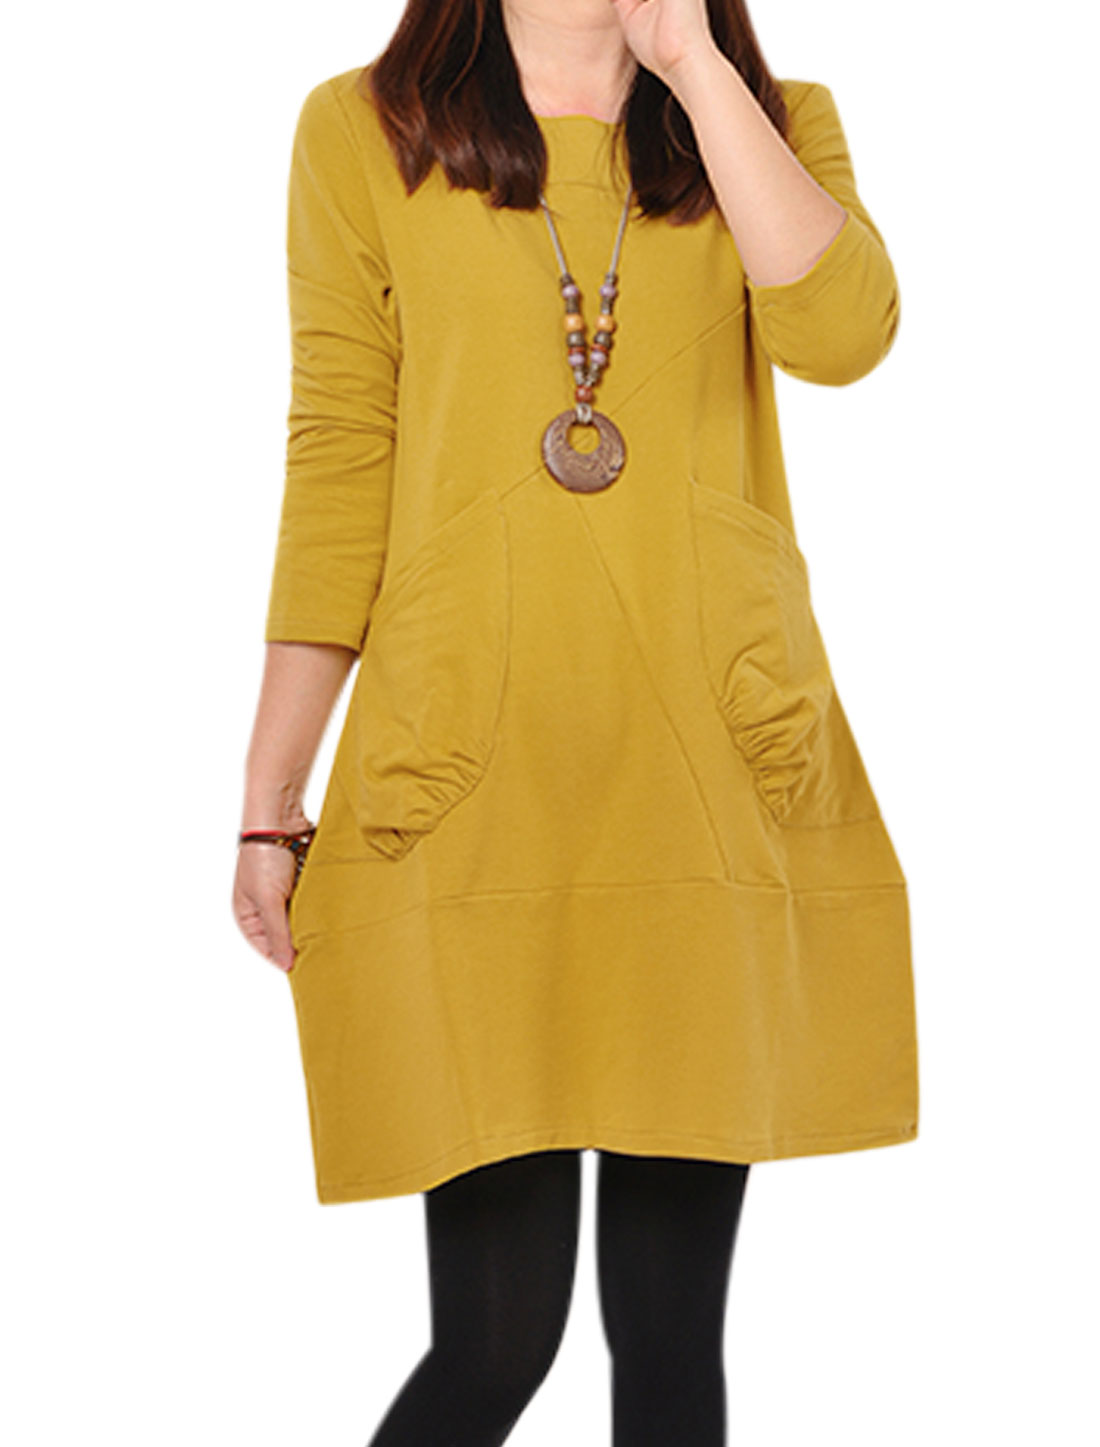 Women Double Pockets Spliced Design Round Neck Straight Dress Dark Yellow S